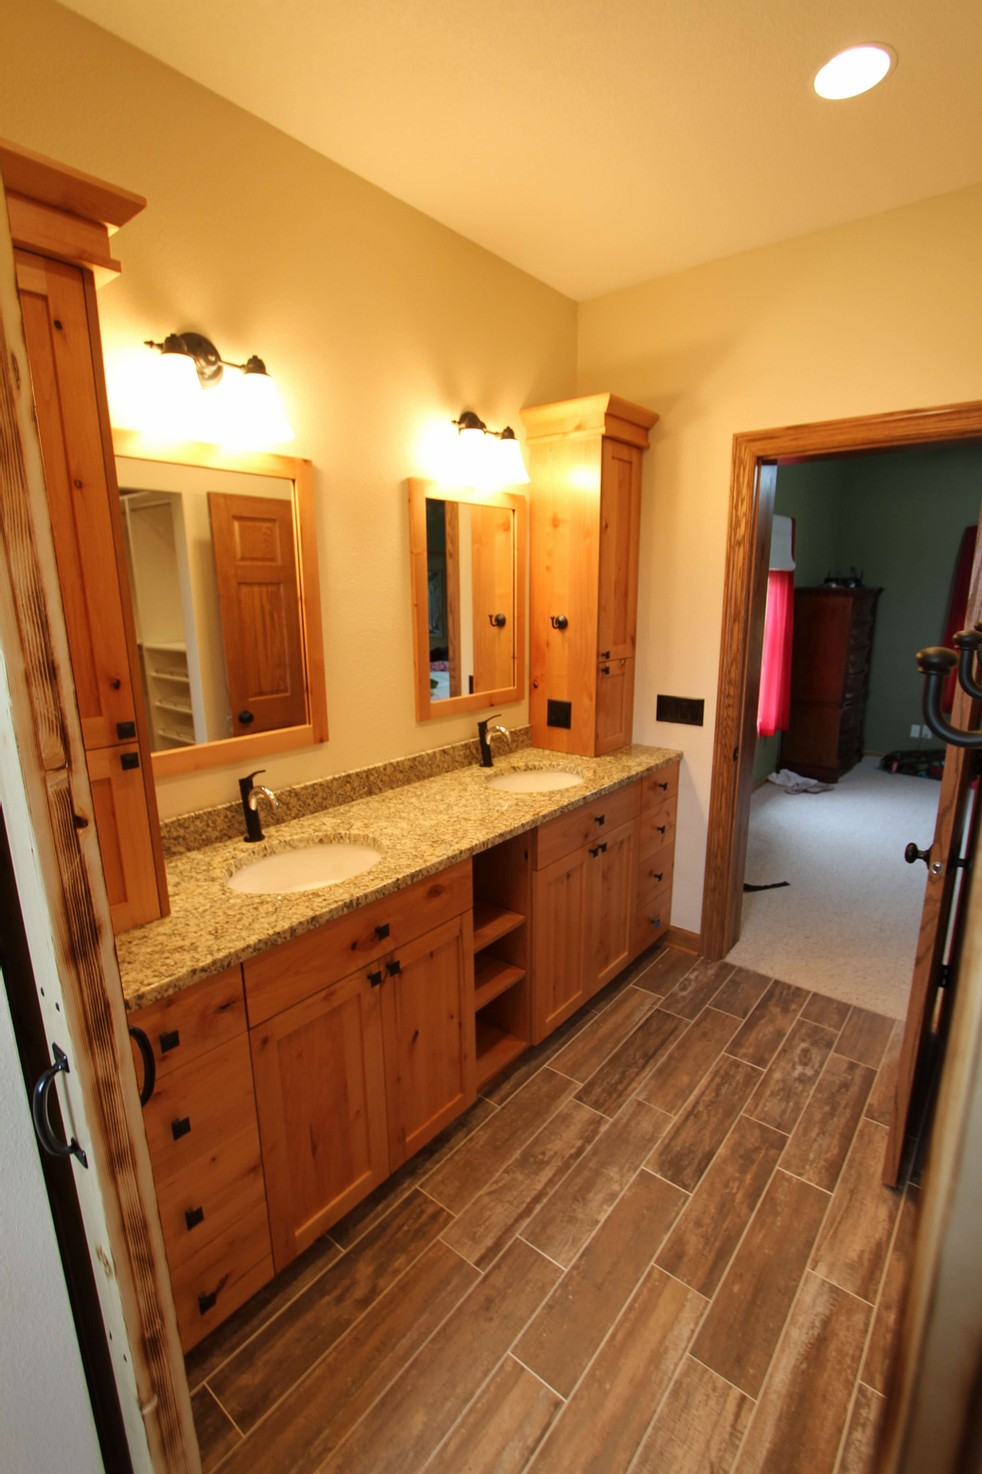 Custom cabinets and granite for this bath remodel